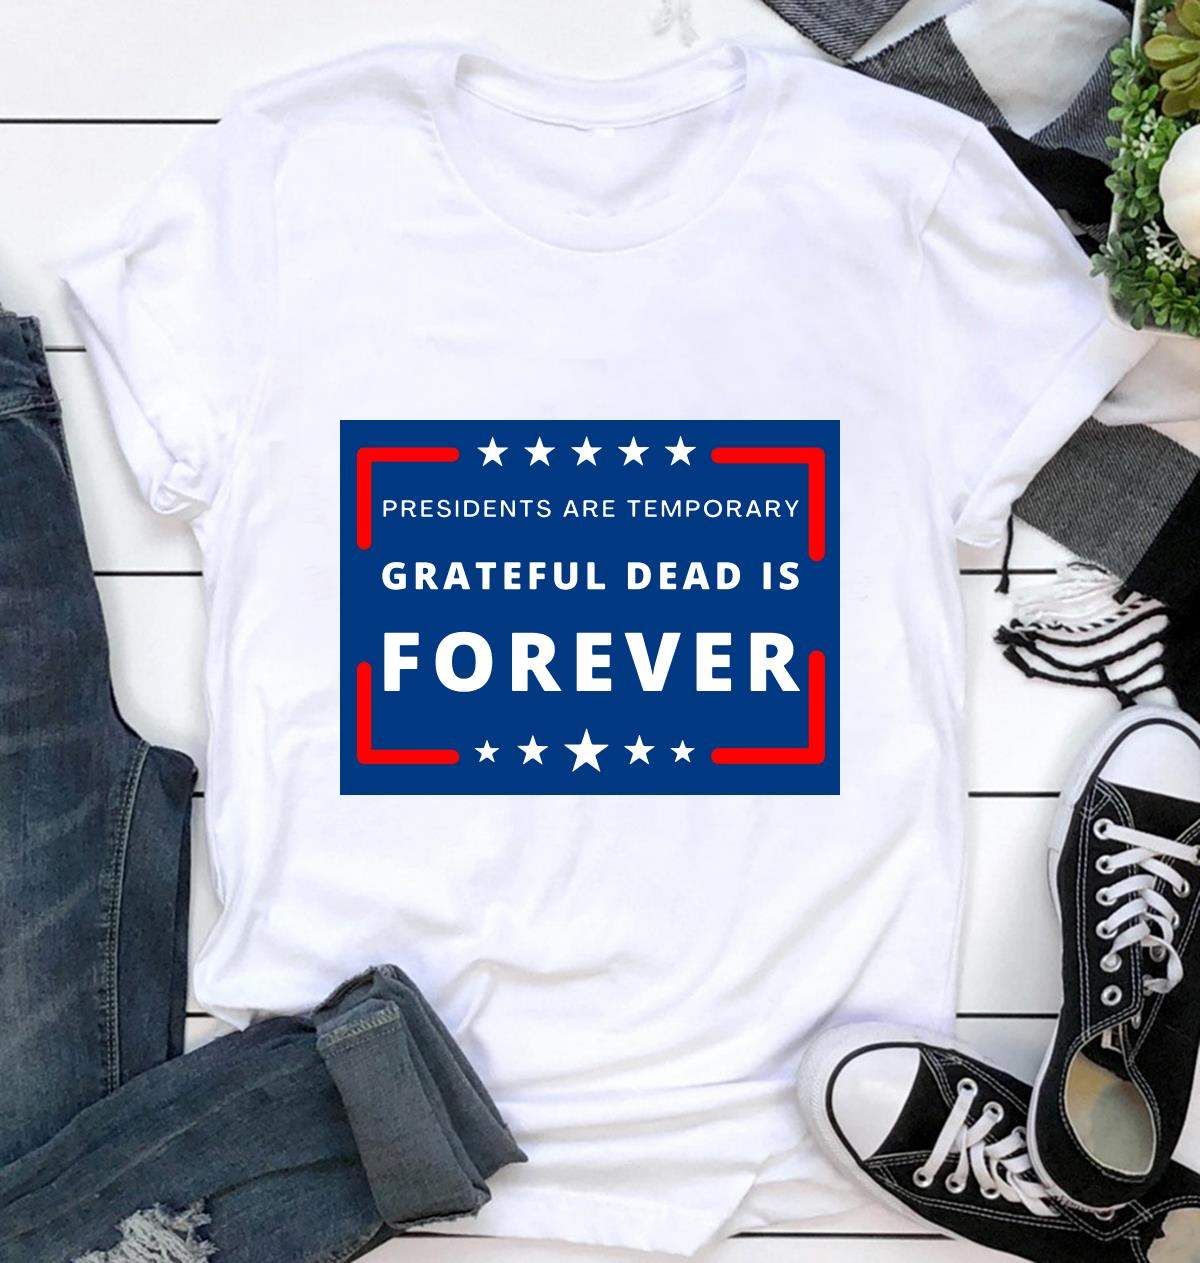 President are Temporary Grateful Dead is forever yard sign ca